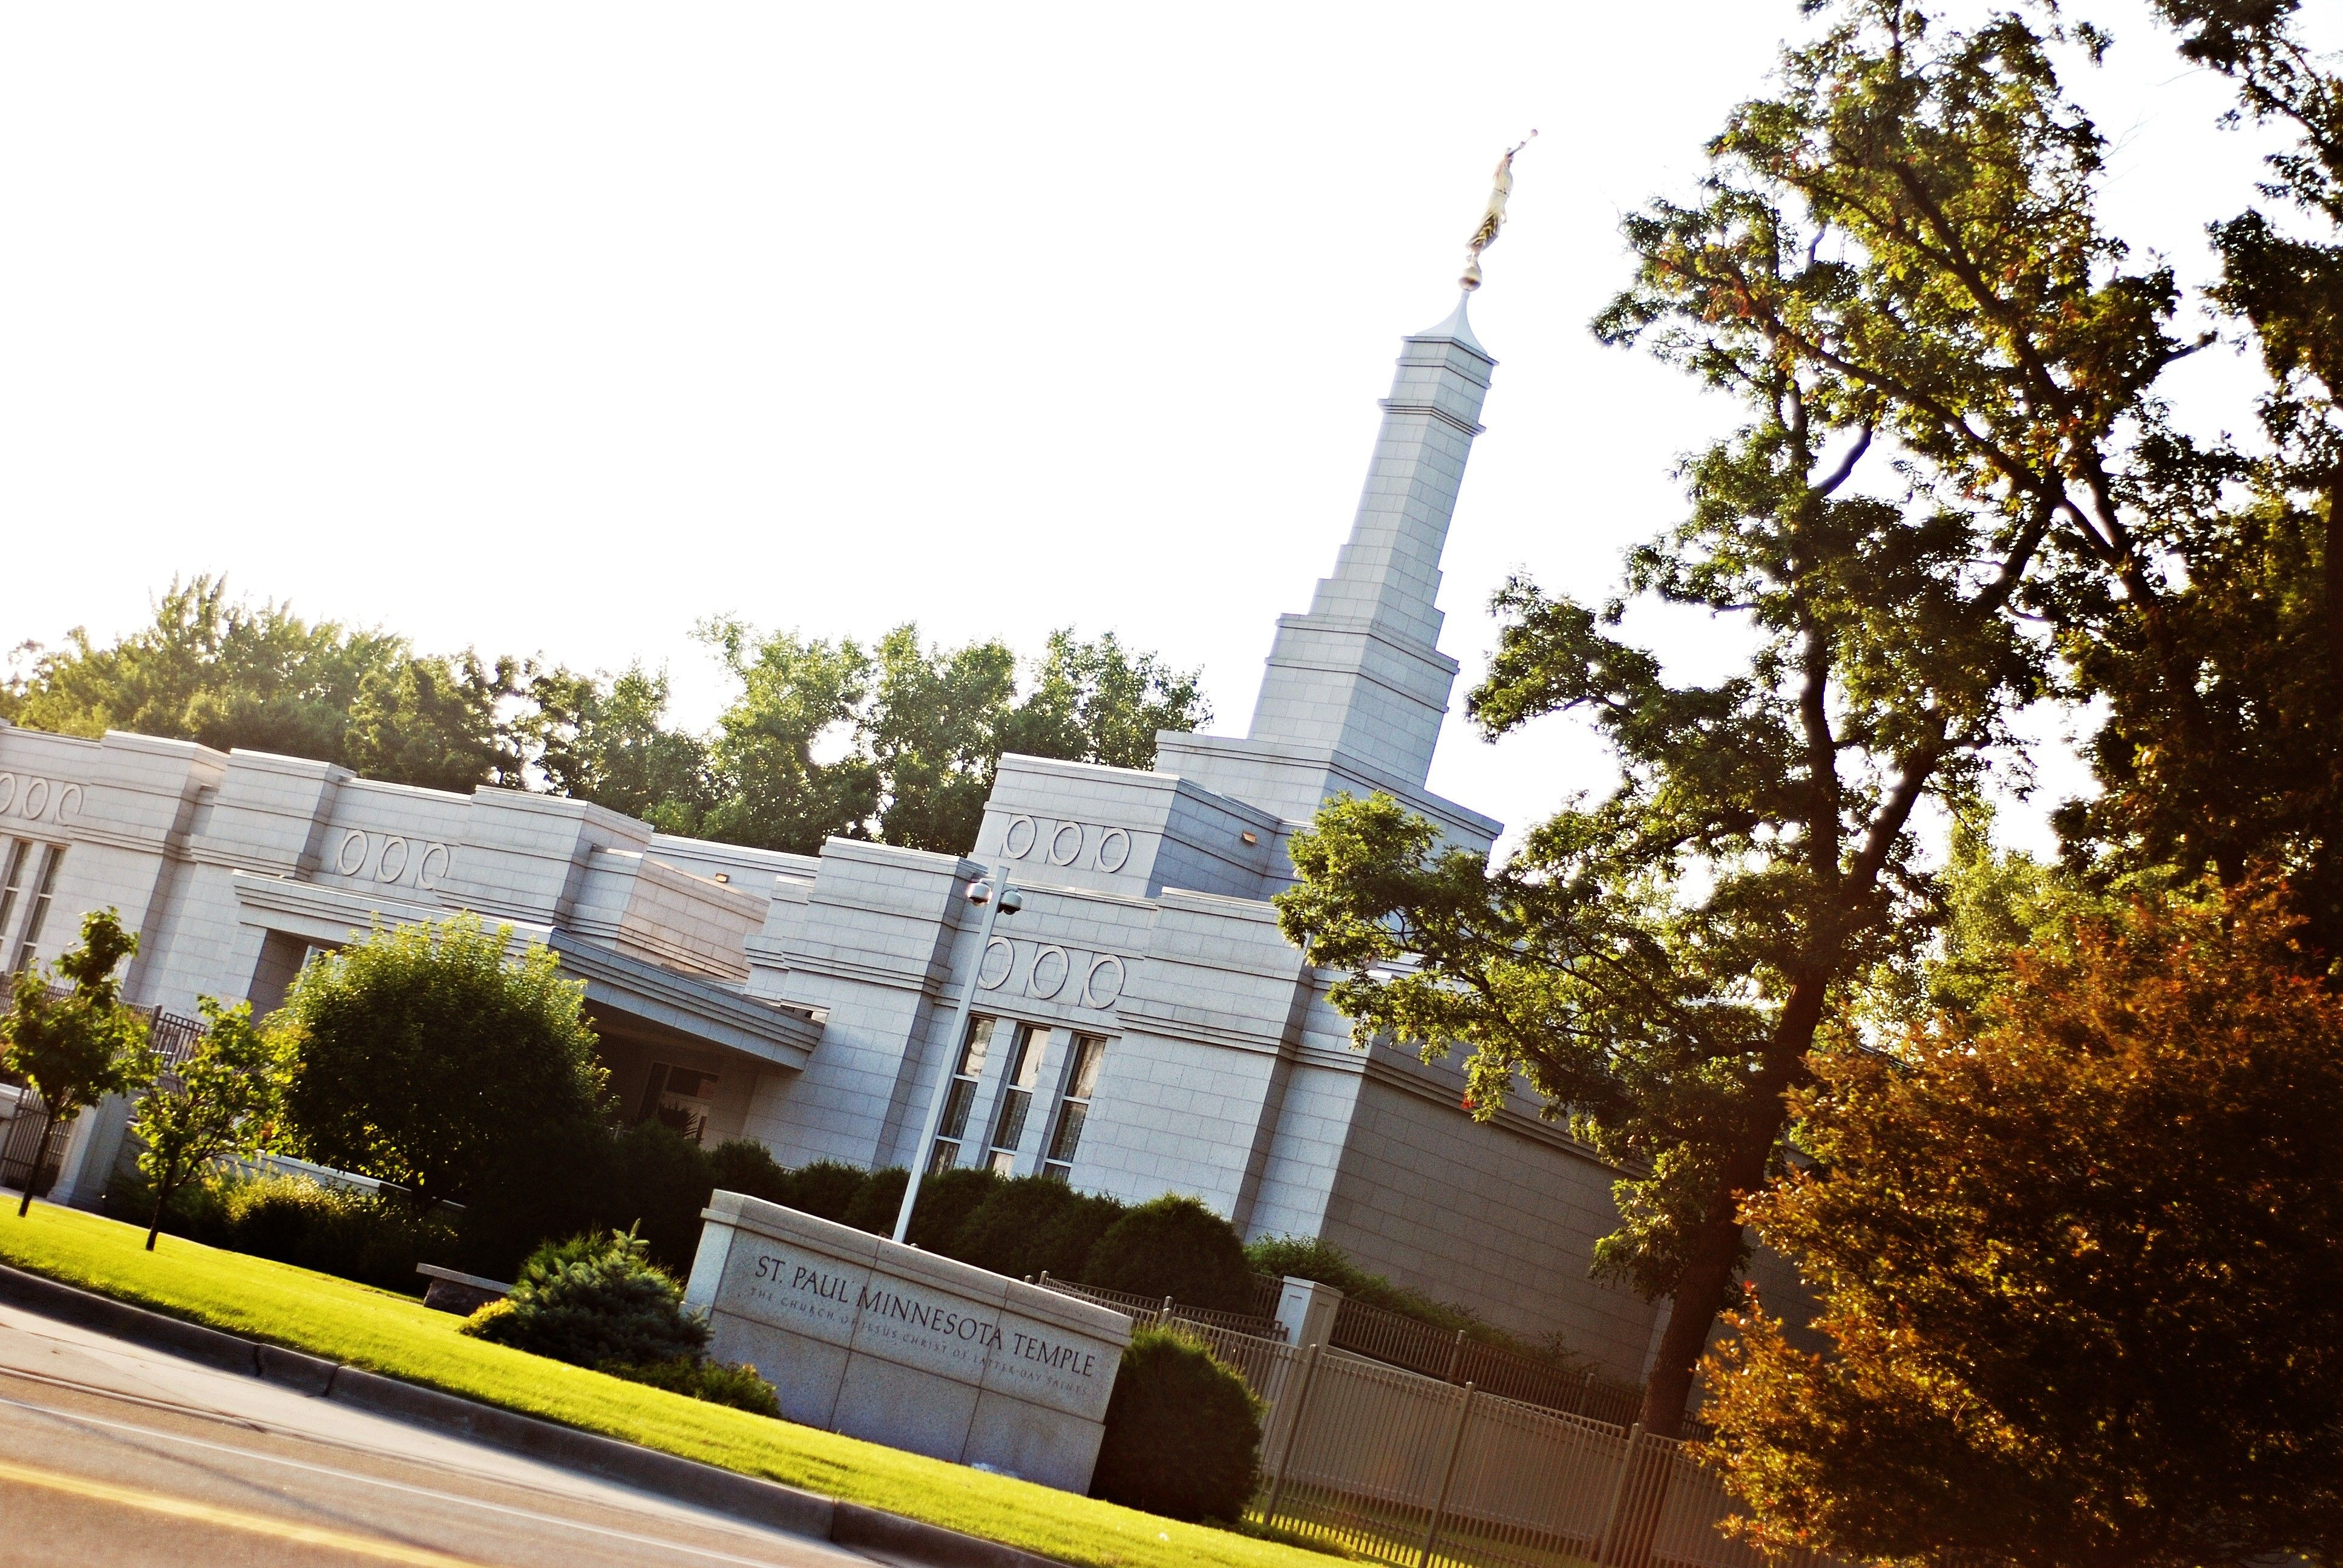 The St. Paul Minnesota Temple, including the name sign, entrance, and scenery.